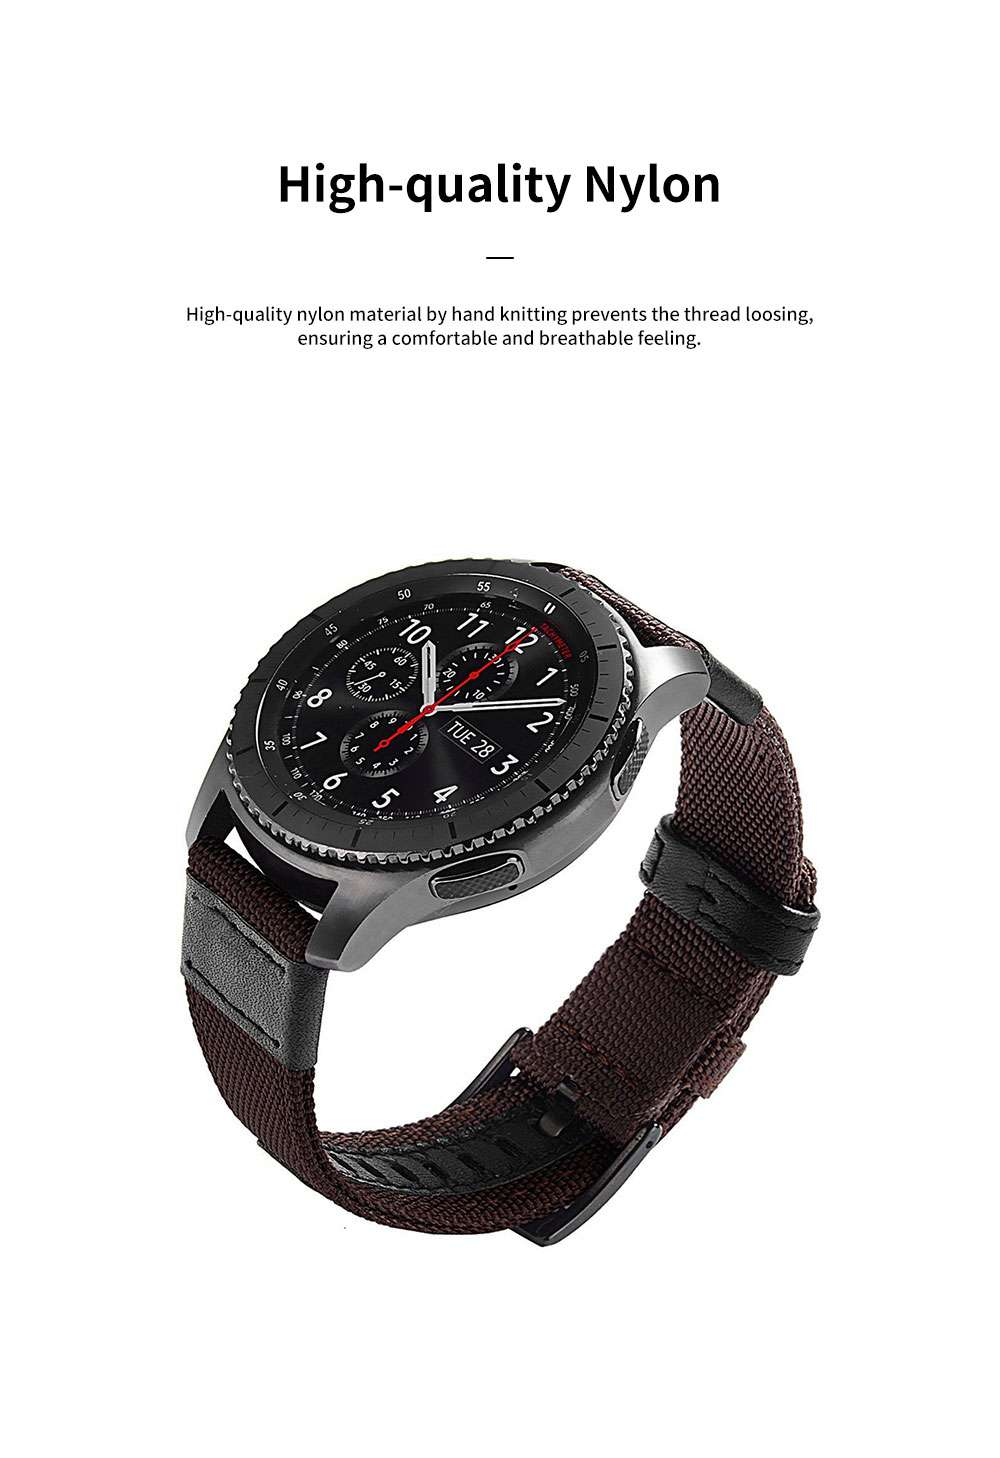 Gear S3 Nylon Bands 22 mm Woven Nylon Replacement Strap Sport Wristband Bracelet with Steel Metal Buckle for Samsung Gear S3 Classic, Gear S3 Frontier, Moto 360 2nd Gen 46mm 1